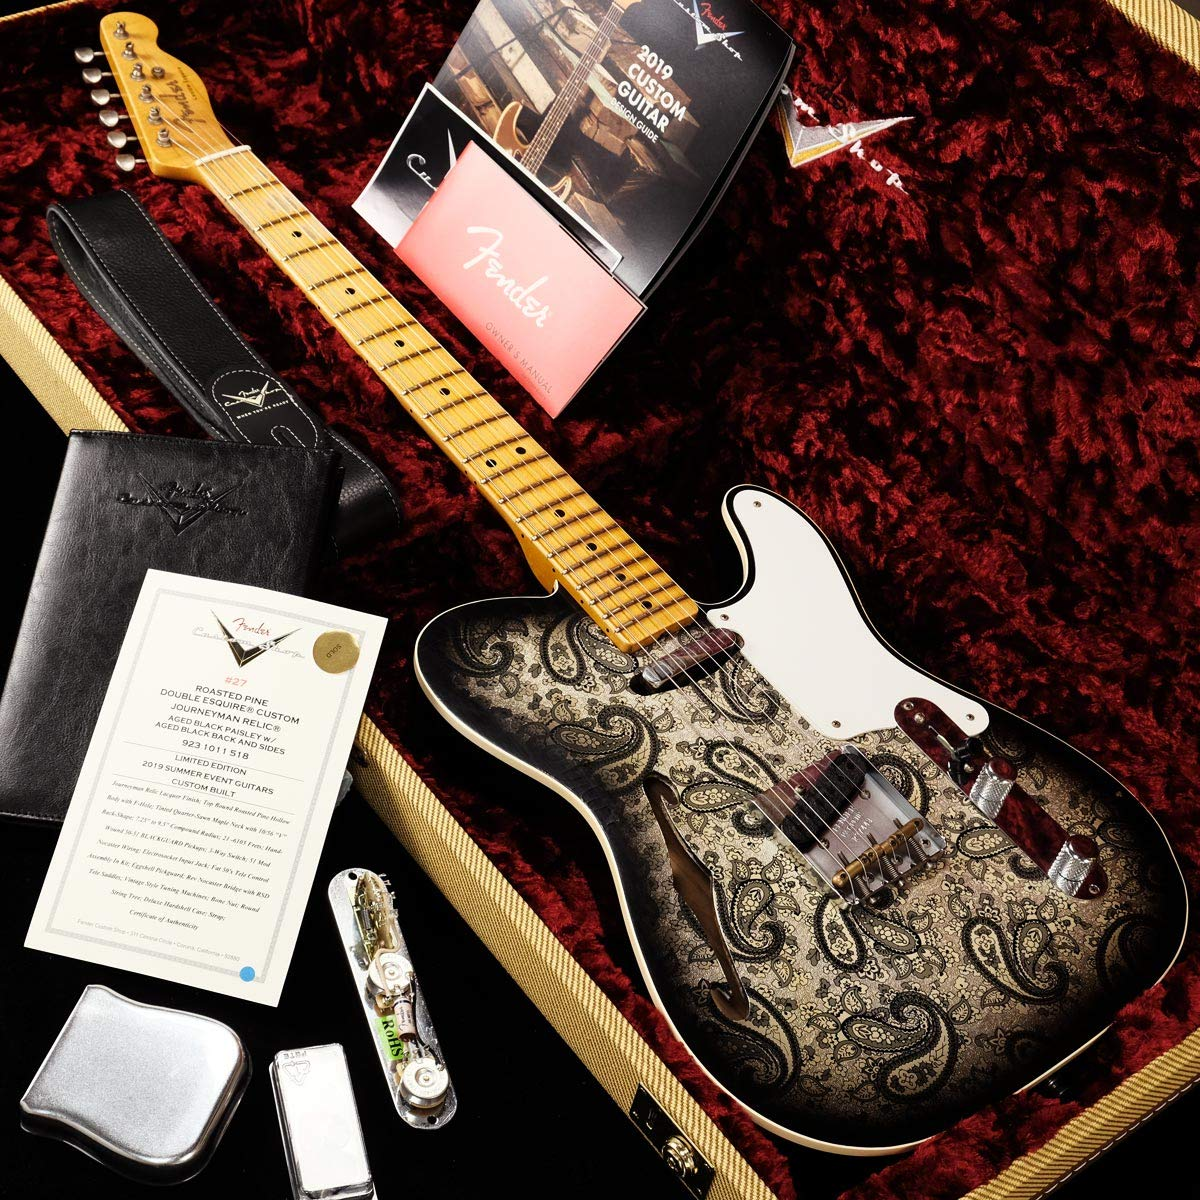 Fender Custom Shop/Limited Edition Roasted Pine Double Esquire Custom Journeyman Relic Aged Black Paisley   B07TT4D4TL